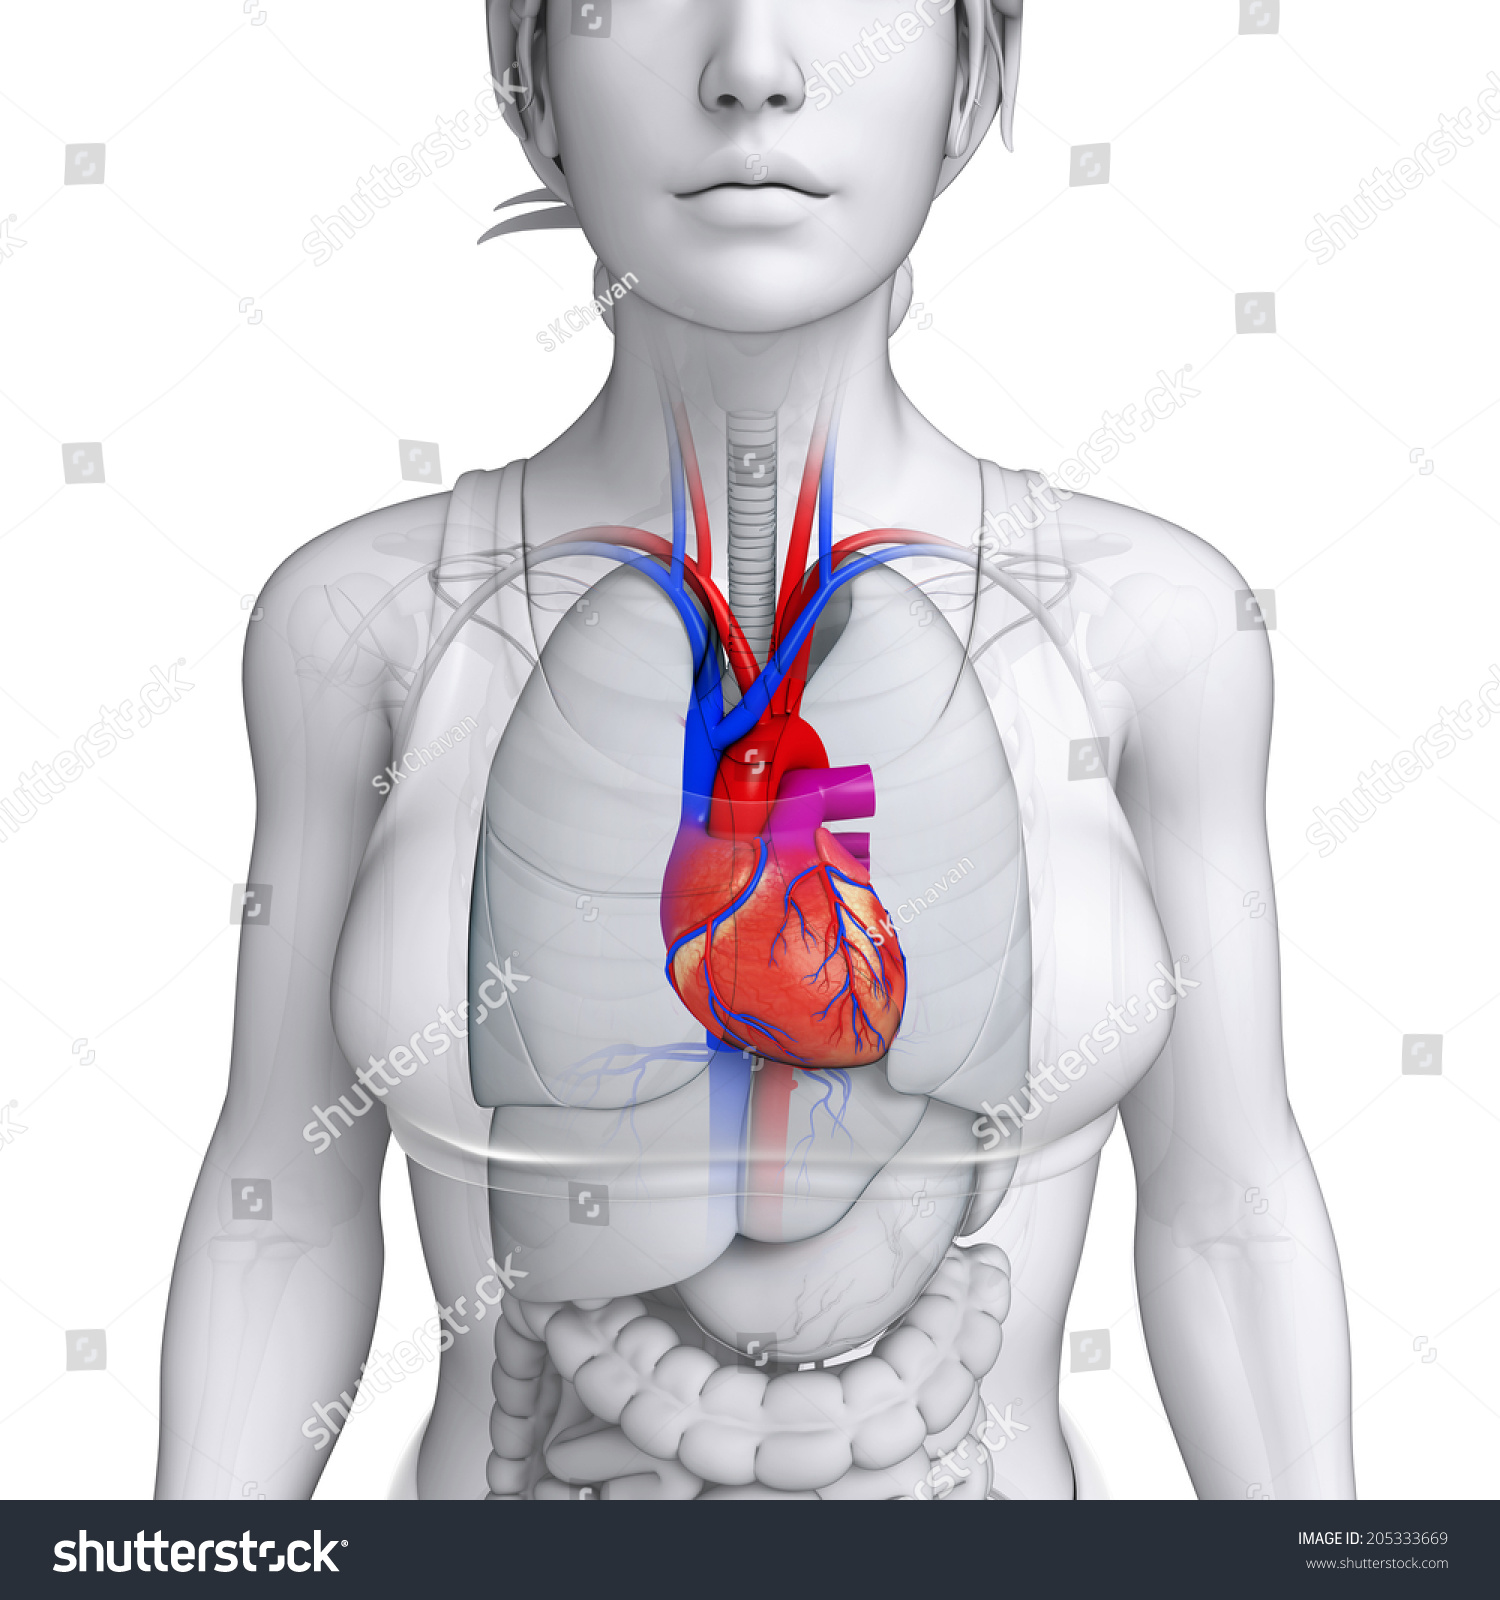 Illustration Female Heart Anatomy Stock Illustration 205333669 ...